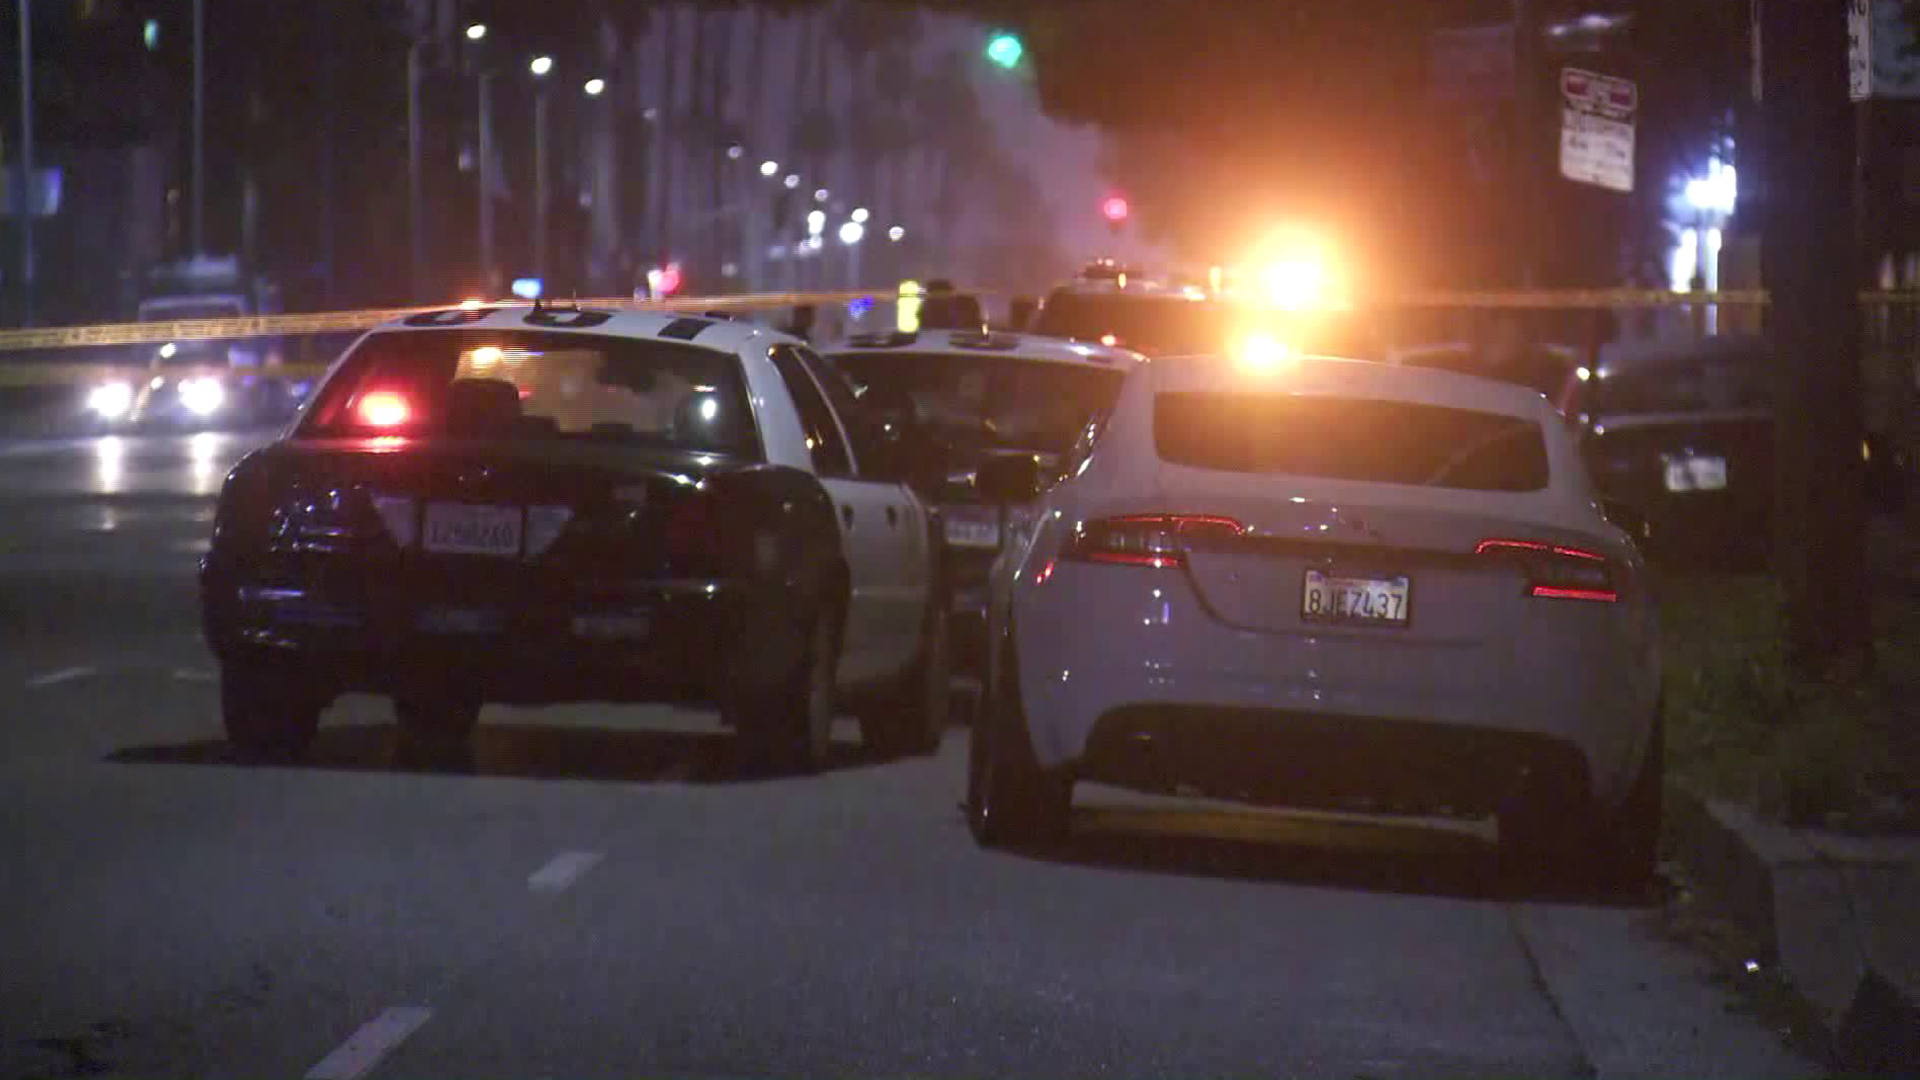 Police respond to investigate after a man was shot dead in South Los Angeles on April 22, 2019. (Credit: KTLA)